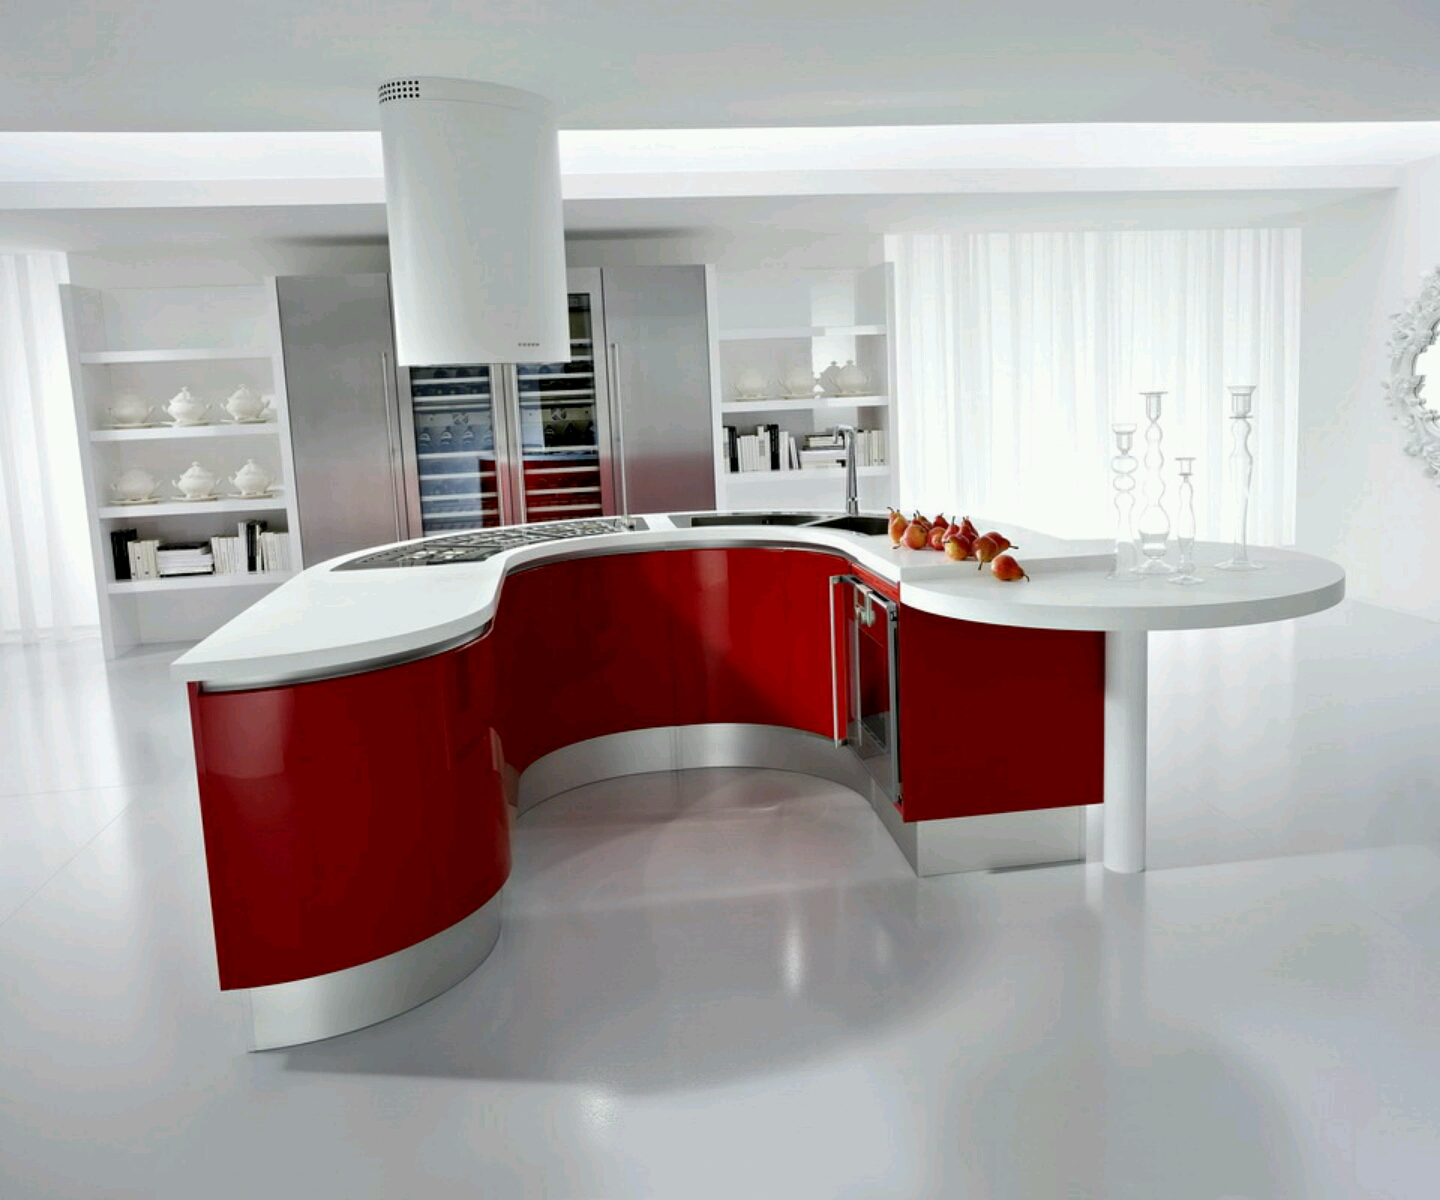 Modern kitchen cabinets designs ideas furniture gallery for Kitchen cabinet design photos